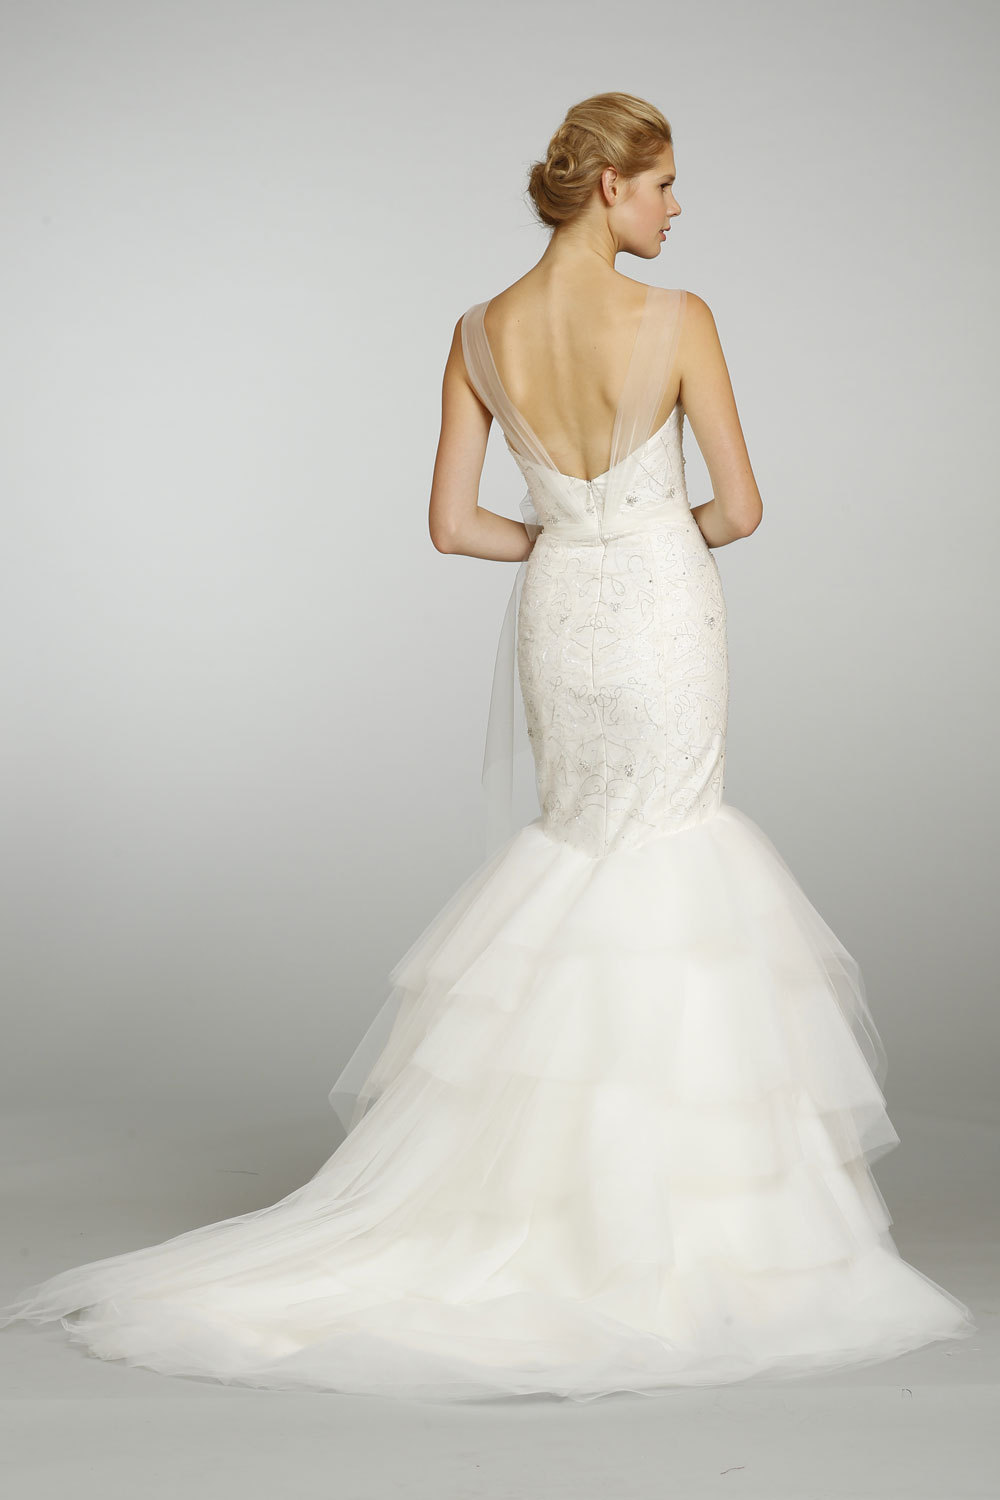 Spring 2013 Wedding Dress Alvina Valenta Bridal 9313